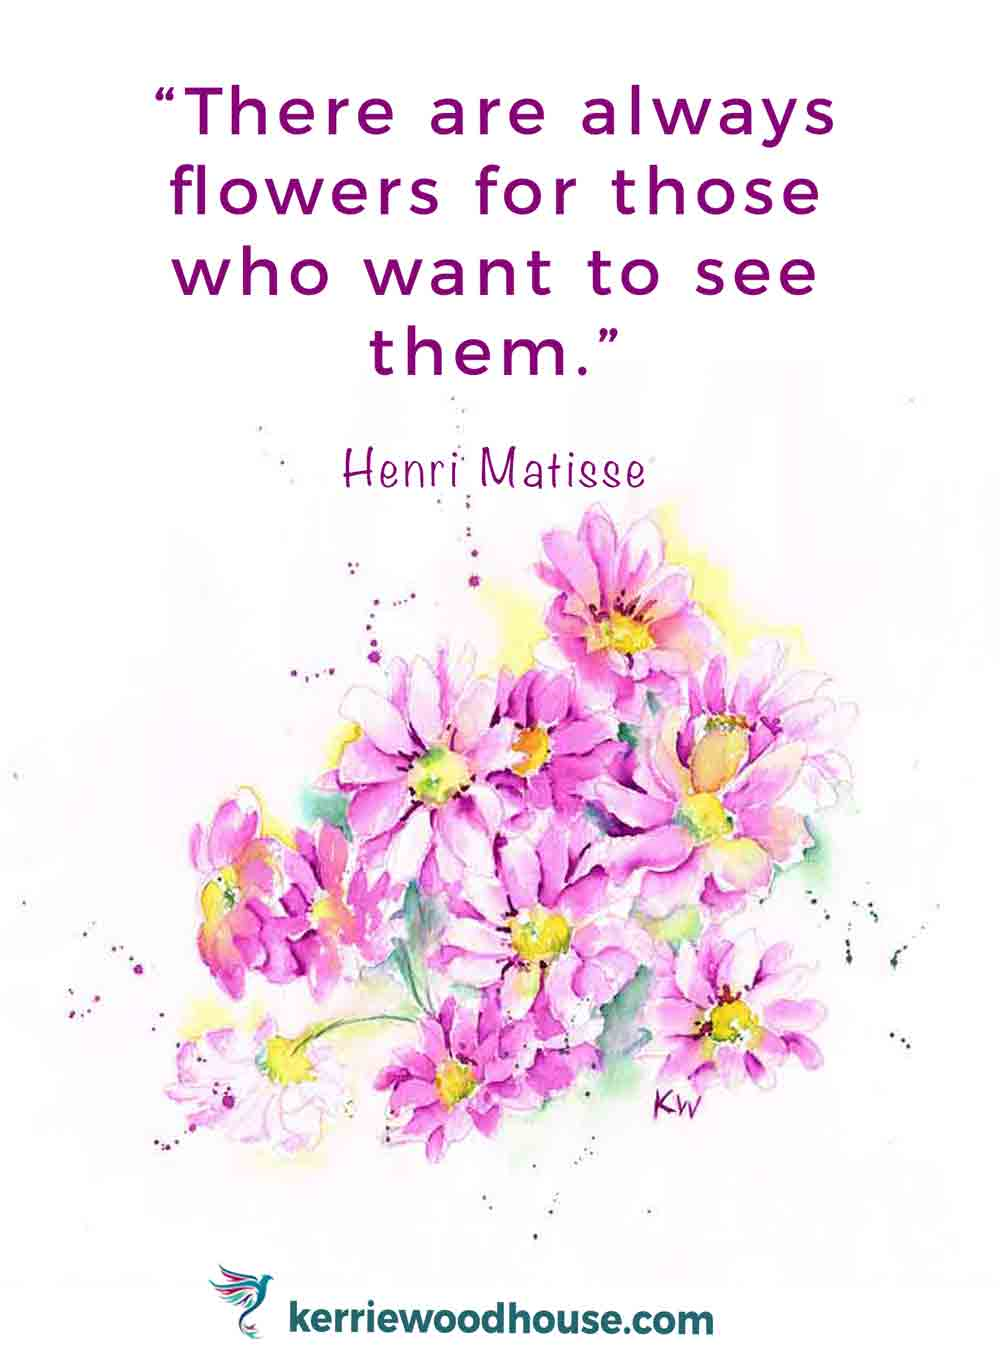 Pinterest-template-quote-for-fresh-flowers-matisse-kw.jpg